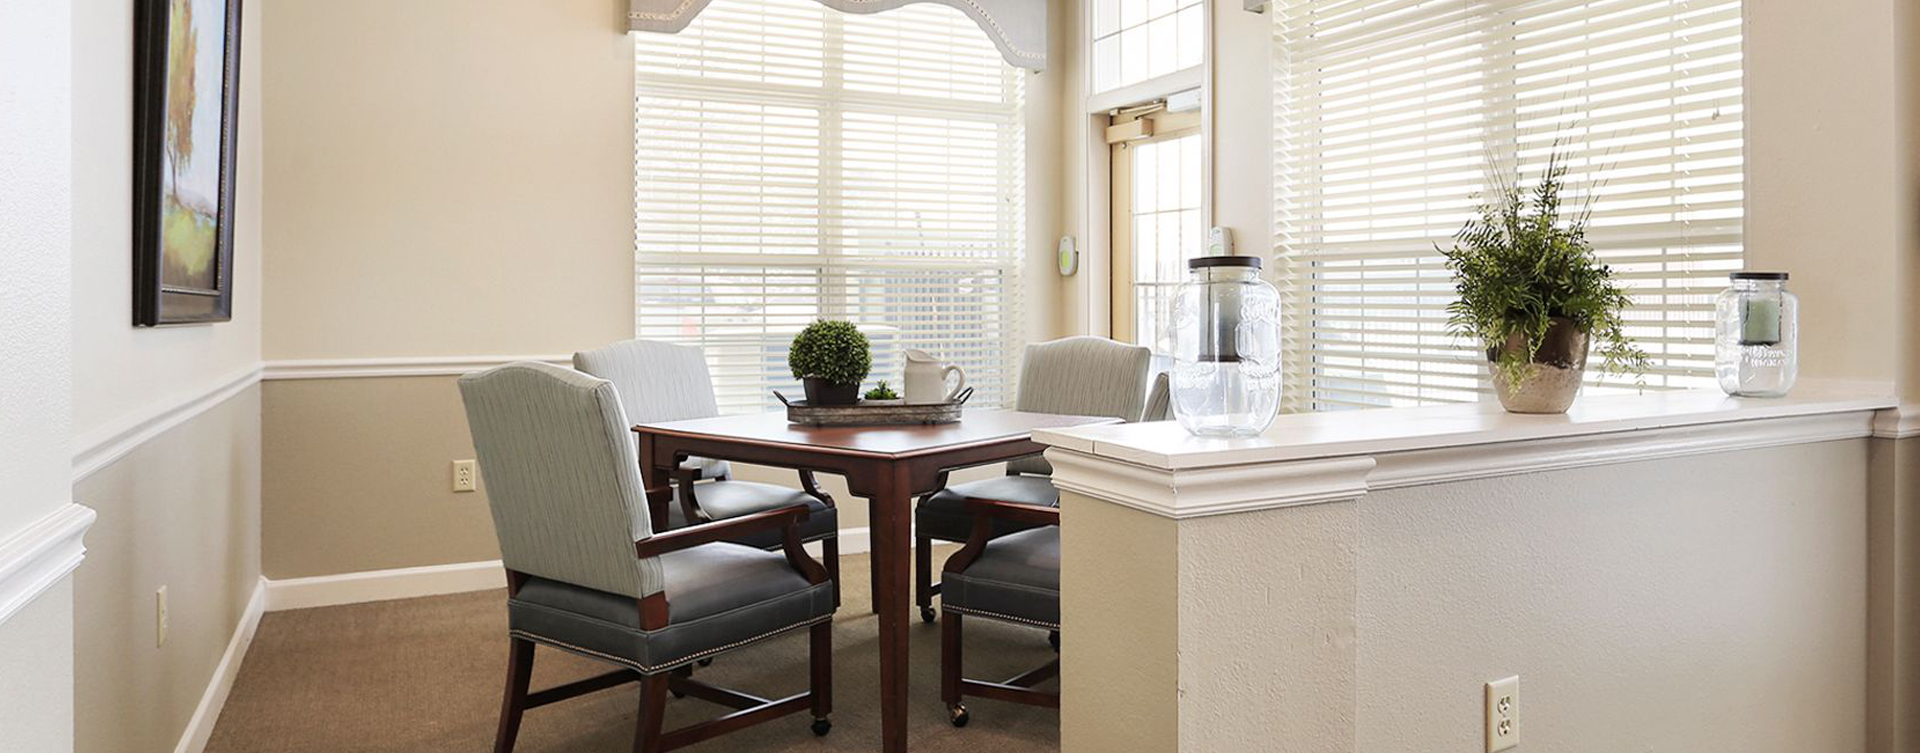 Relax in the warmth of the sunroom at Bickford of Champaign